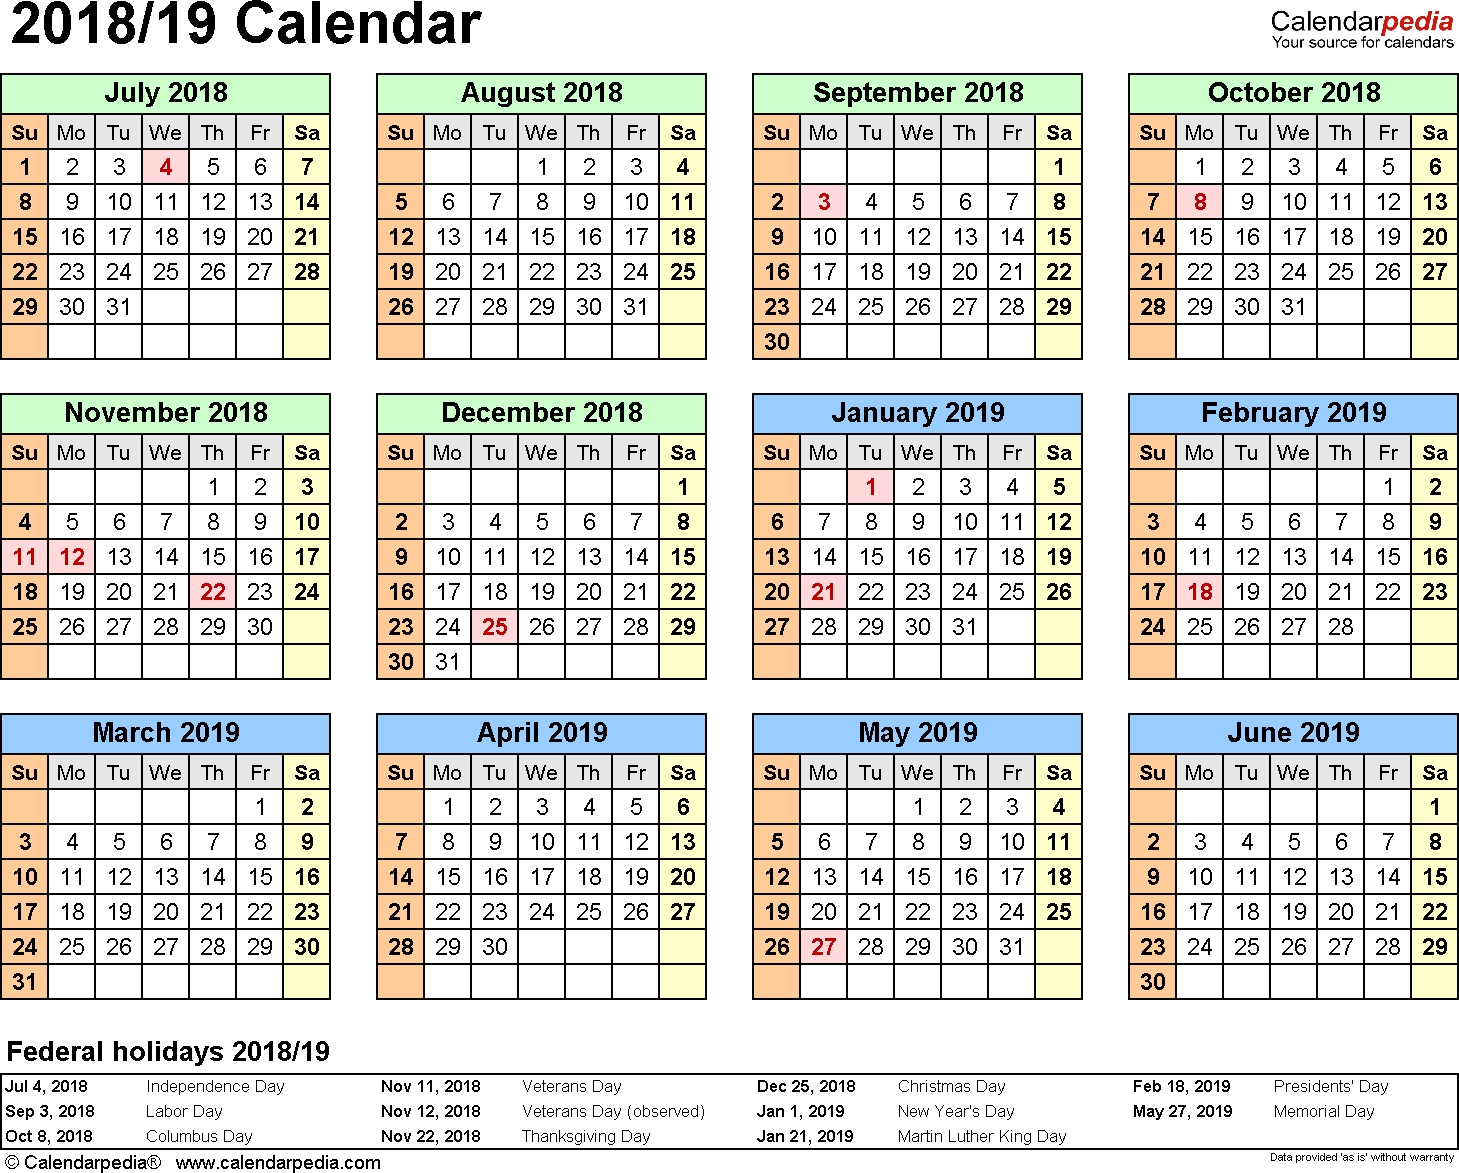 Split Year Calendar 2018/19 (July To June) - Pdf Templates  Financial Year Australia Callendar